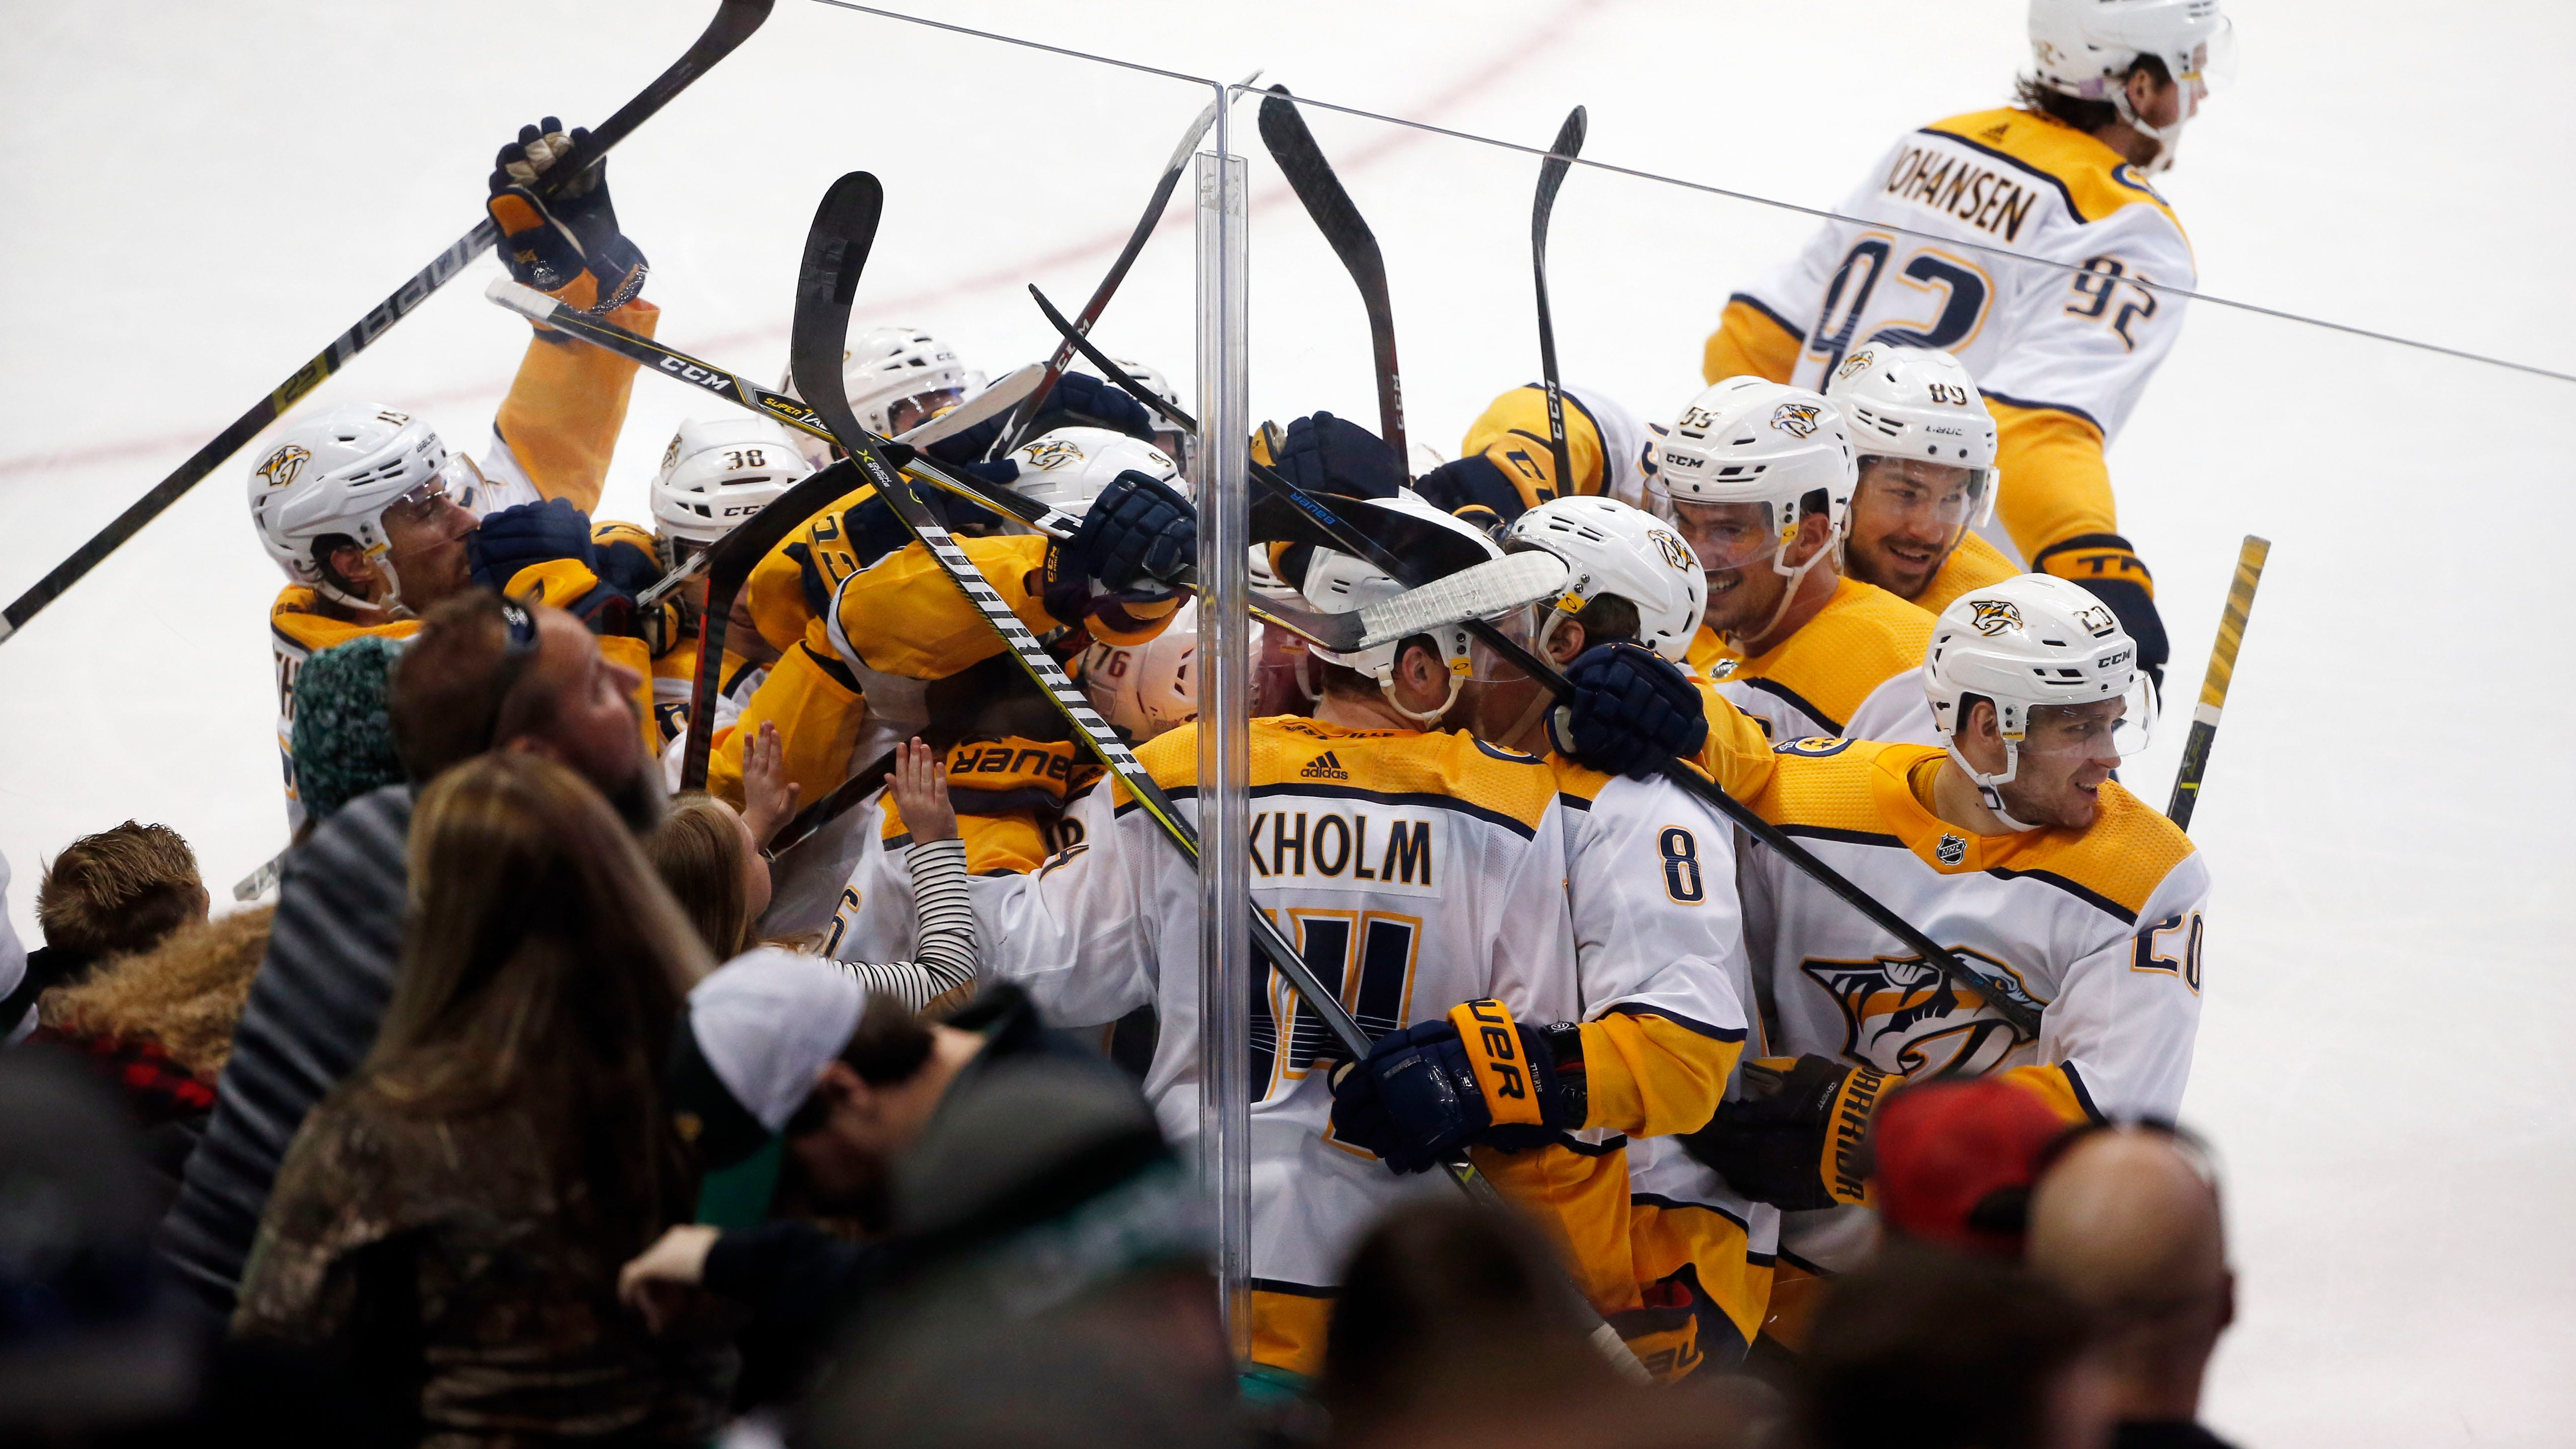 Nashville Predators defenseman Mattias Ekholm (14) is swarmed by teammates after his game-winning goal against the Dallas Stars during overtime of an NHL hockey game in Dallas, Saturday, Nov. 10, 2018.